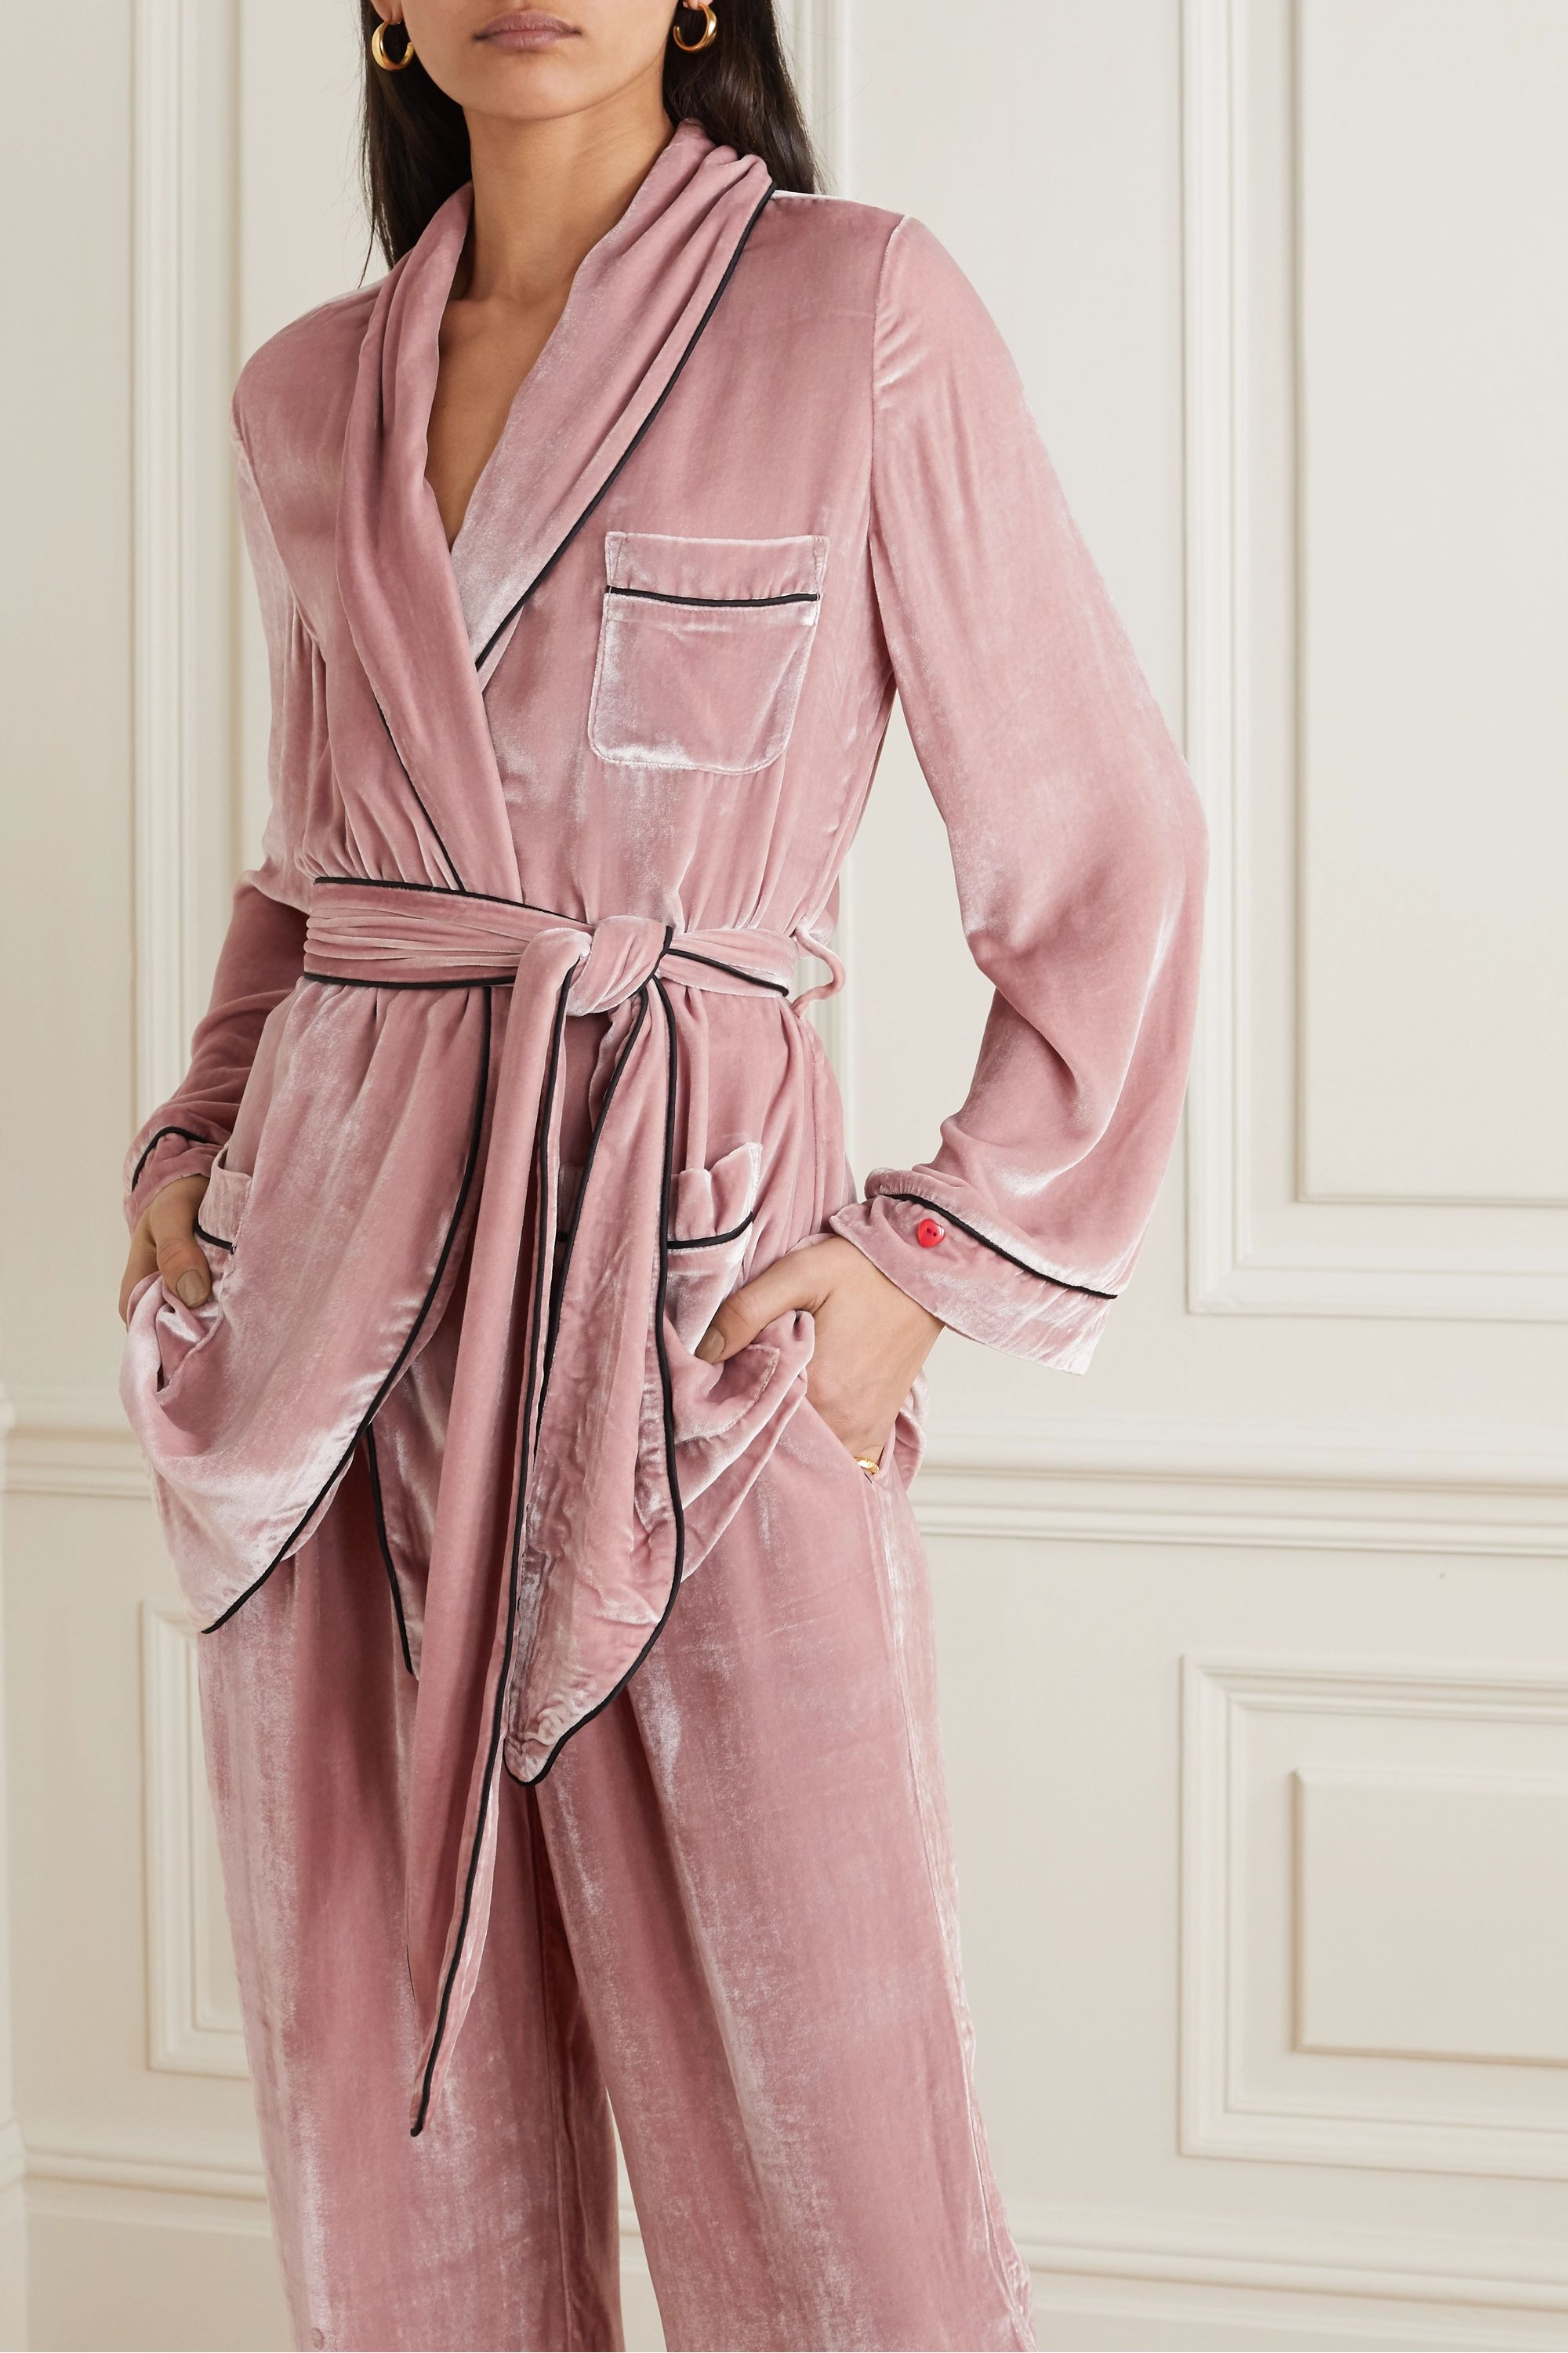 Sleeping with Jacques The Bon Vivant belted piped velvet robe